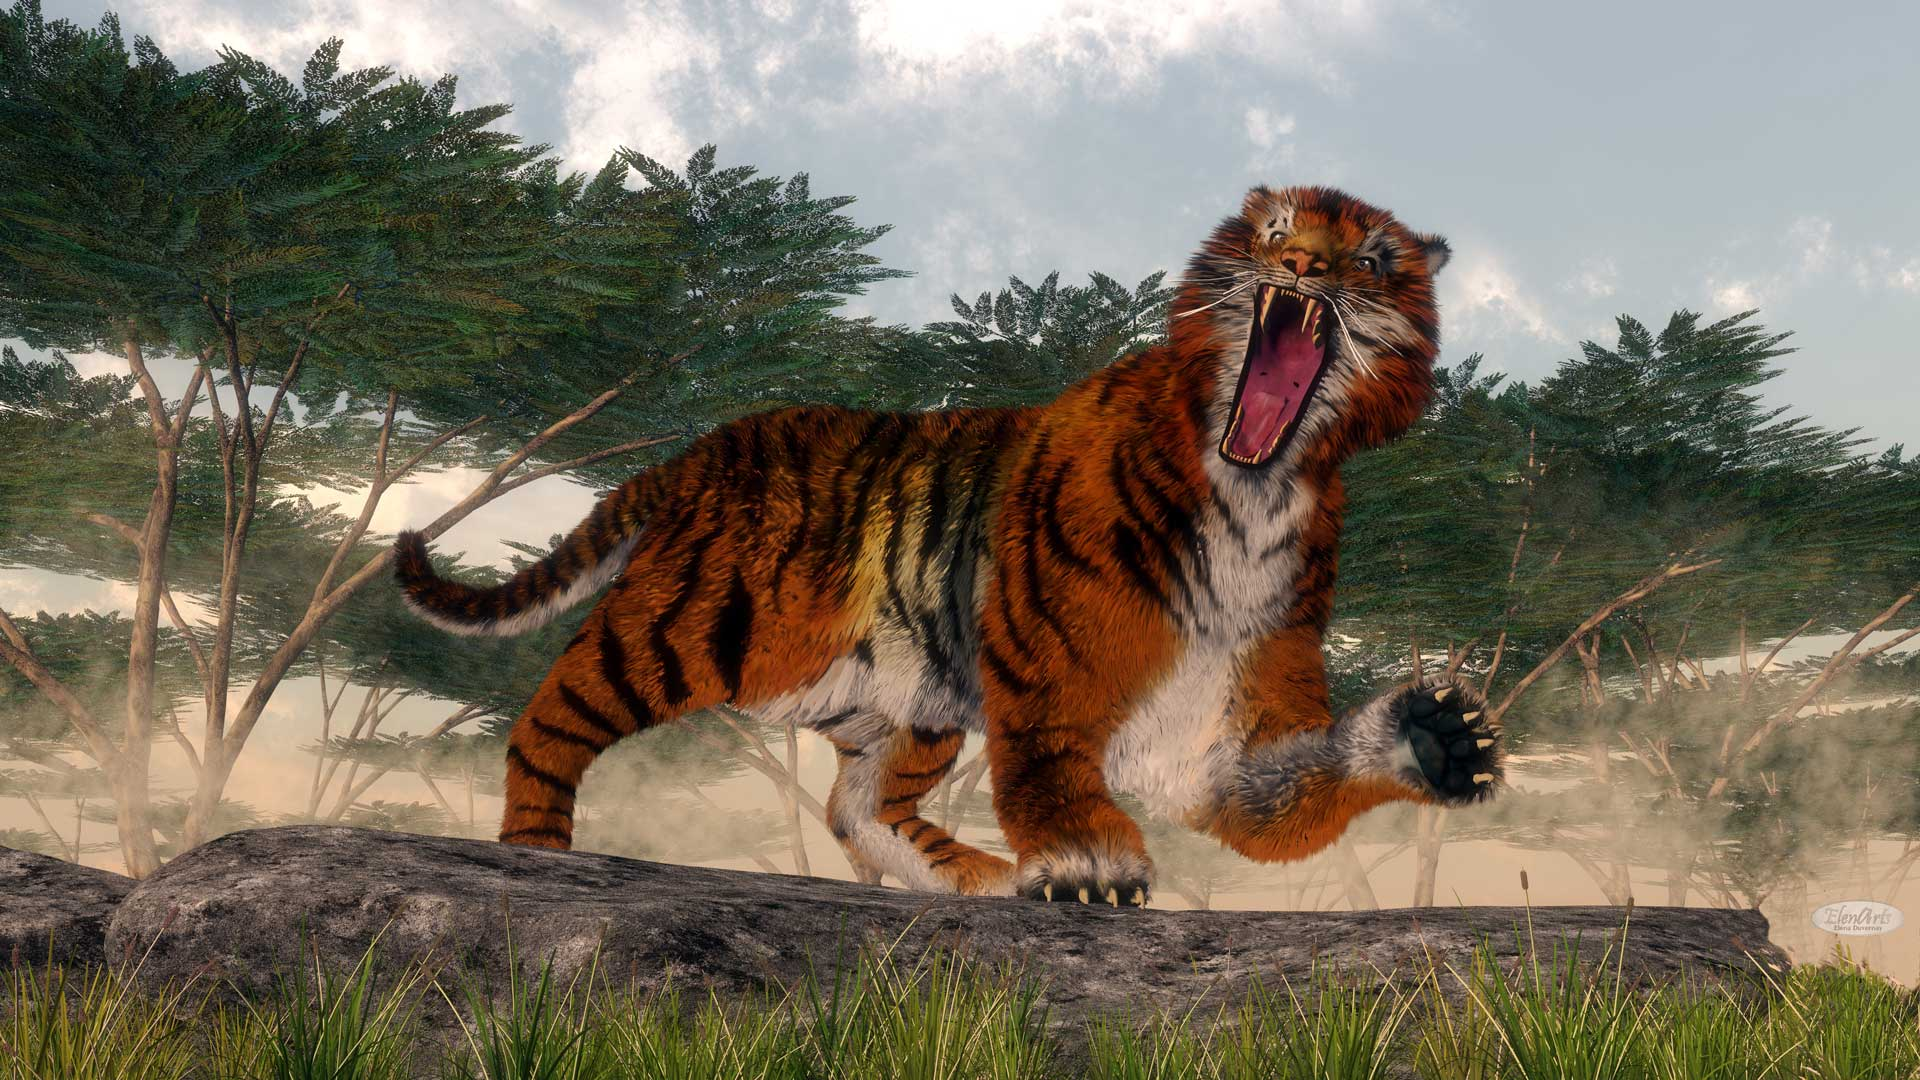 Tiger roaring upon a rock - 3D render